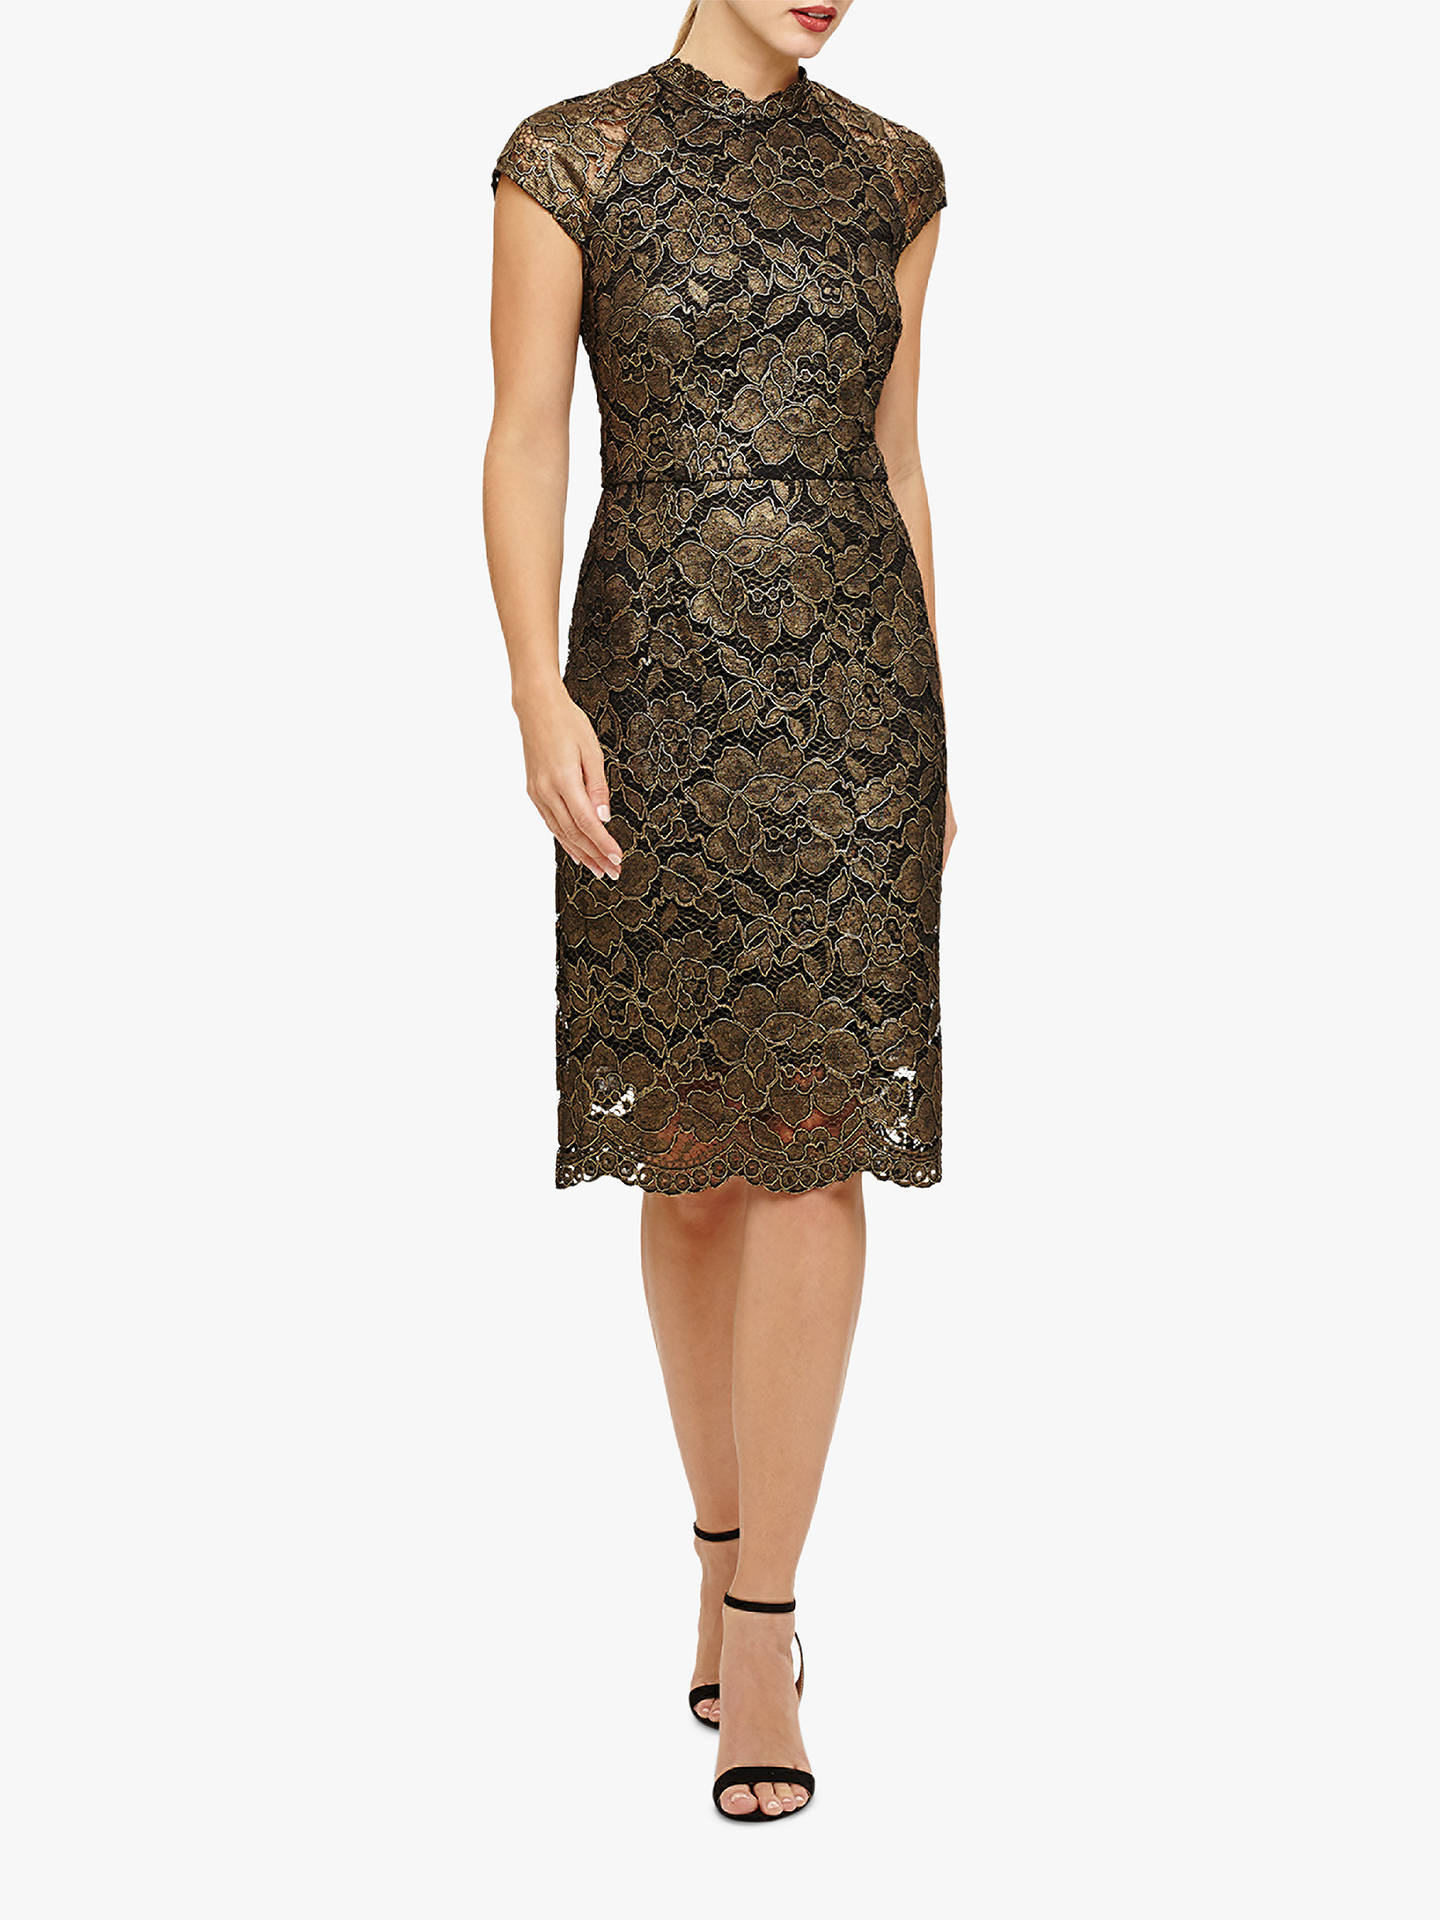 1b542c16448e Buy Phase Eight Janie Lace Dress, Black/Gold, 14 Online at johnlewis.